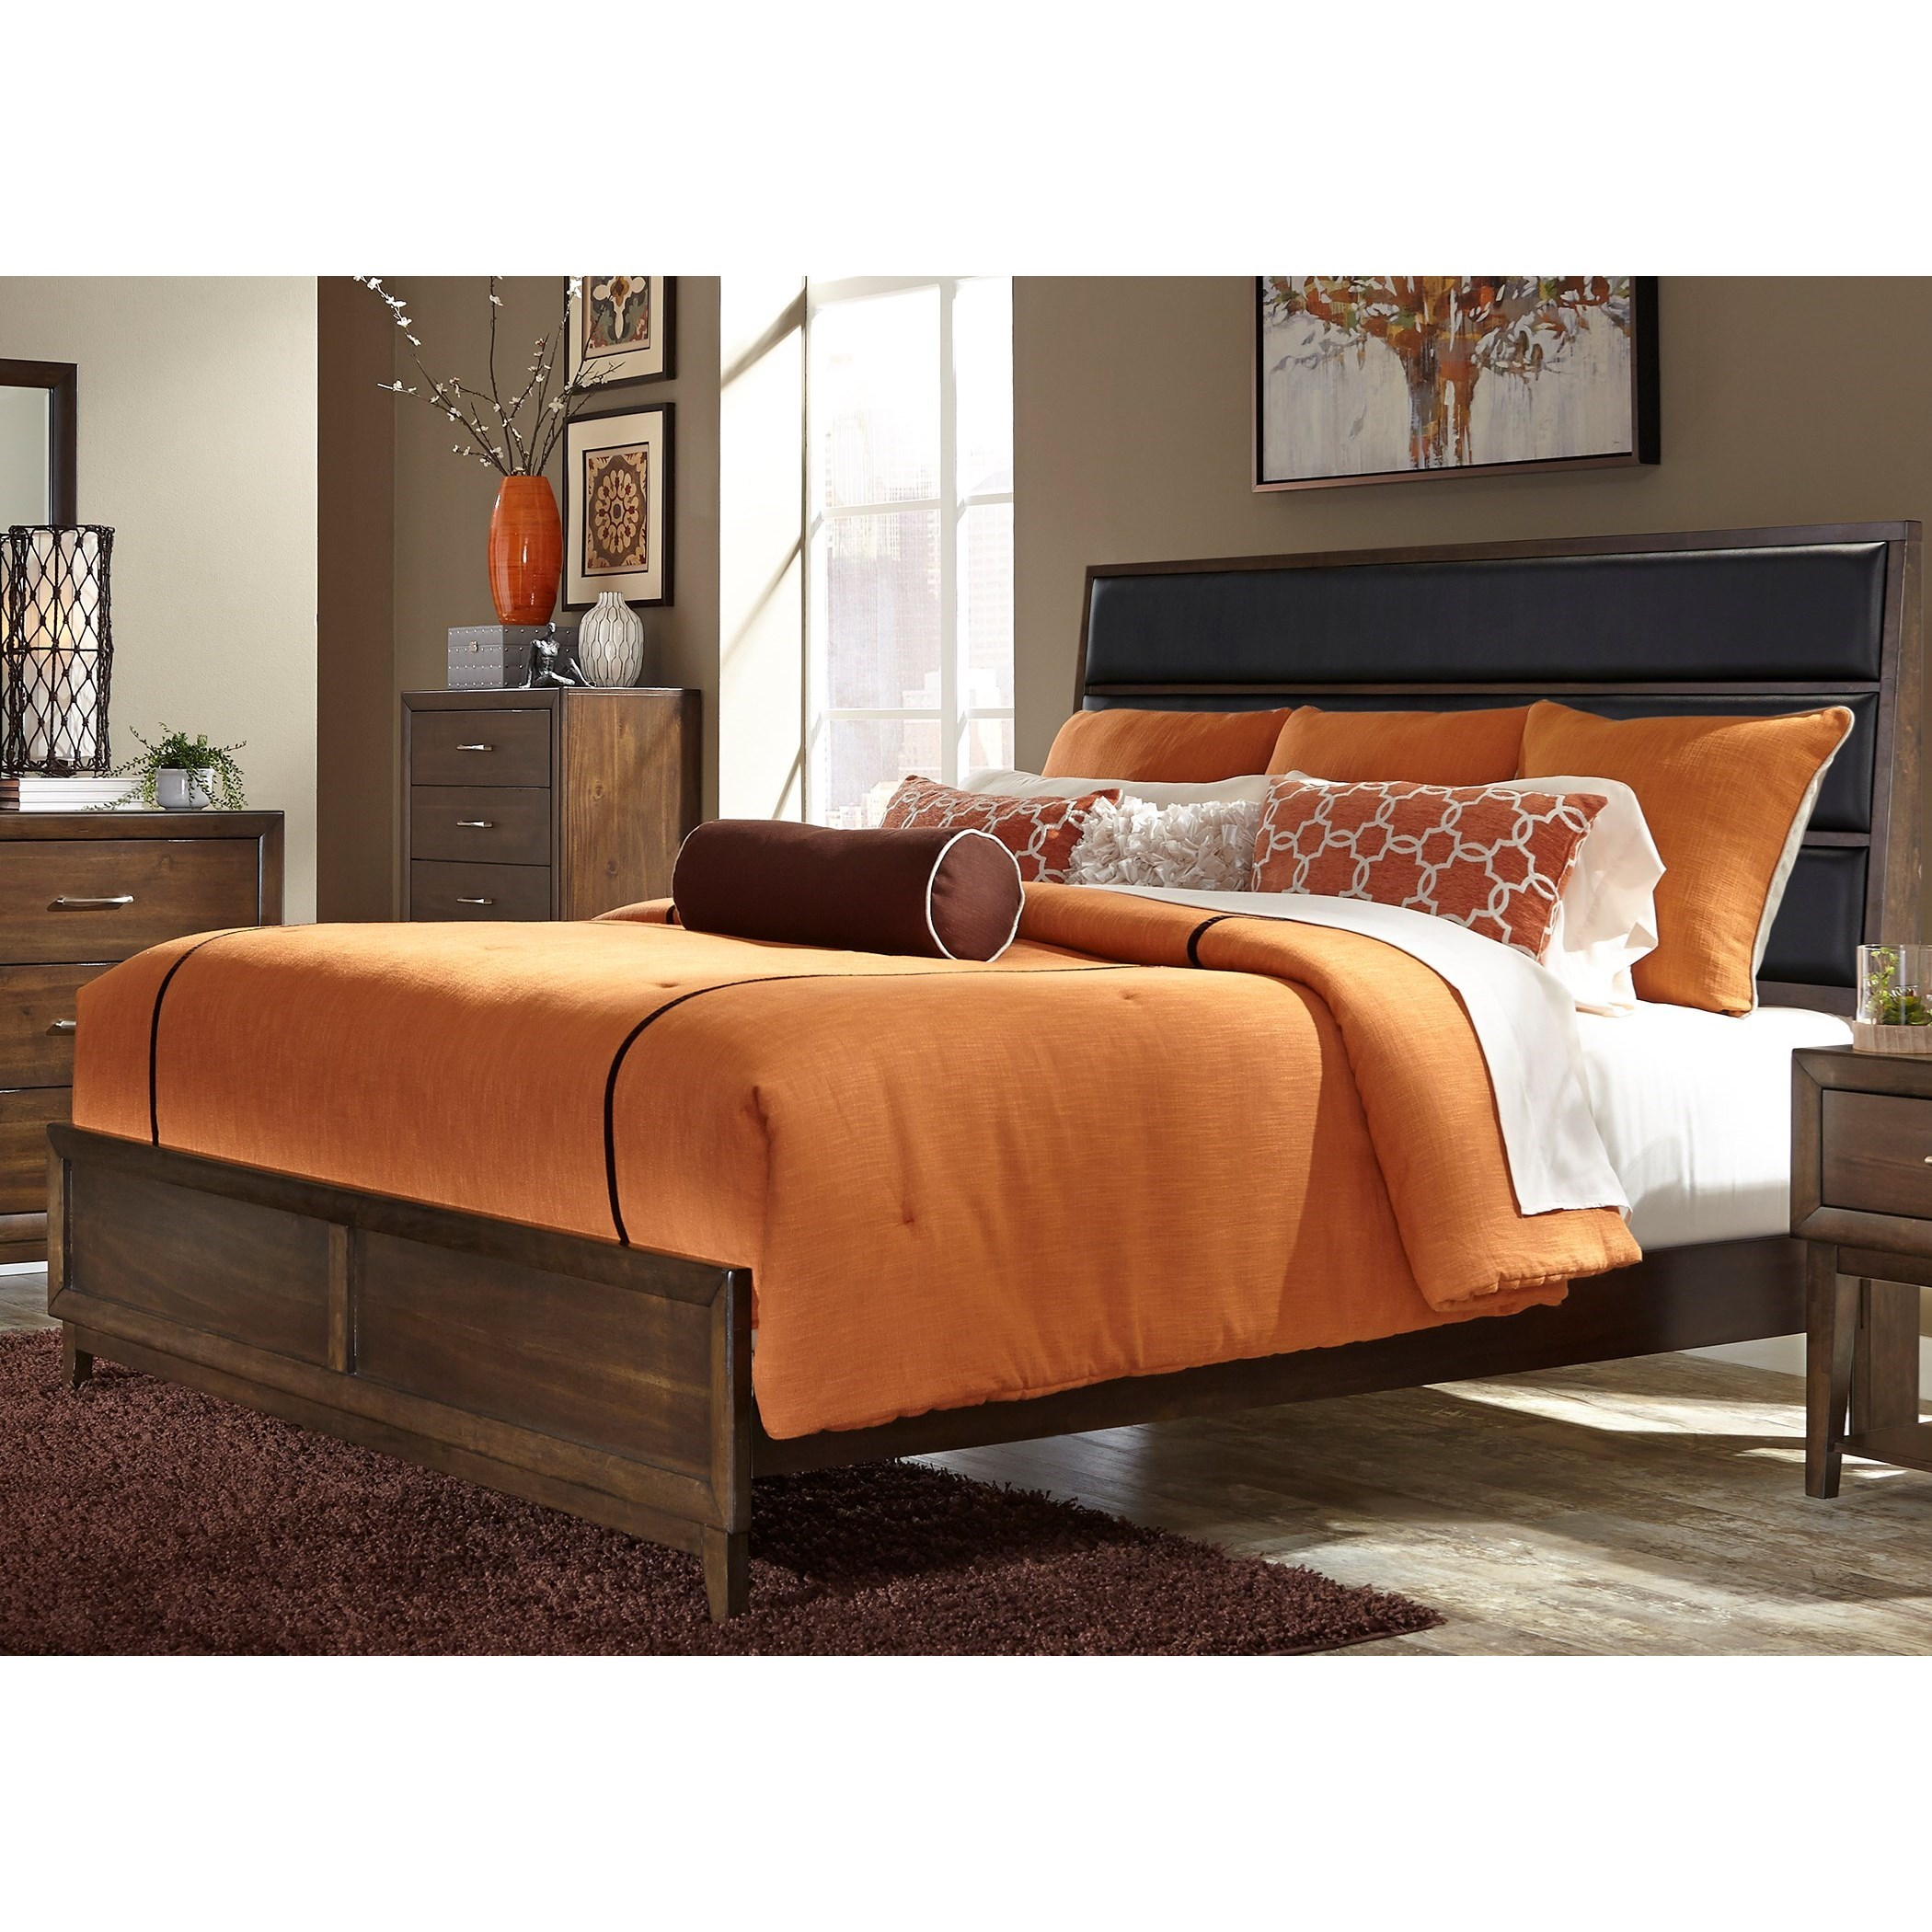 Liberty Furniture Hudson Square Bedroom King Low Profile Bed  - Item Number: 365-BR-KUB